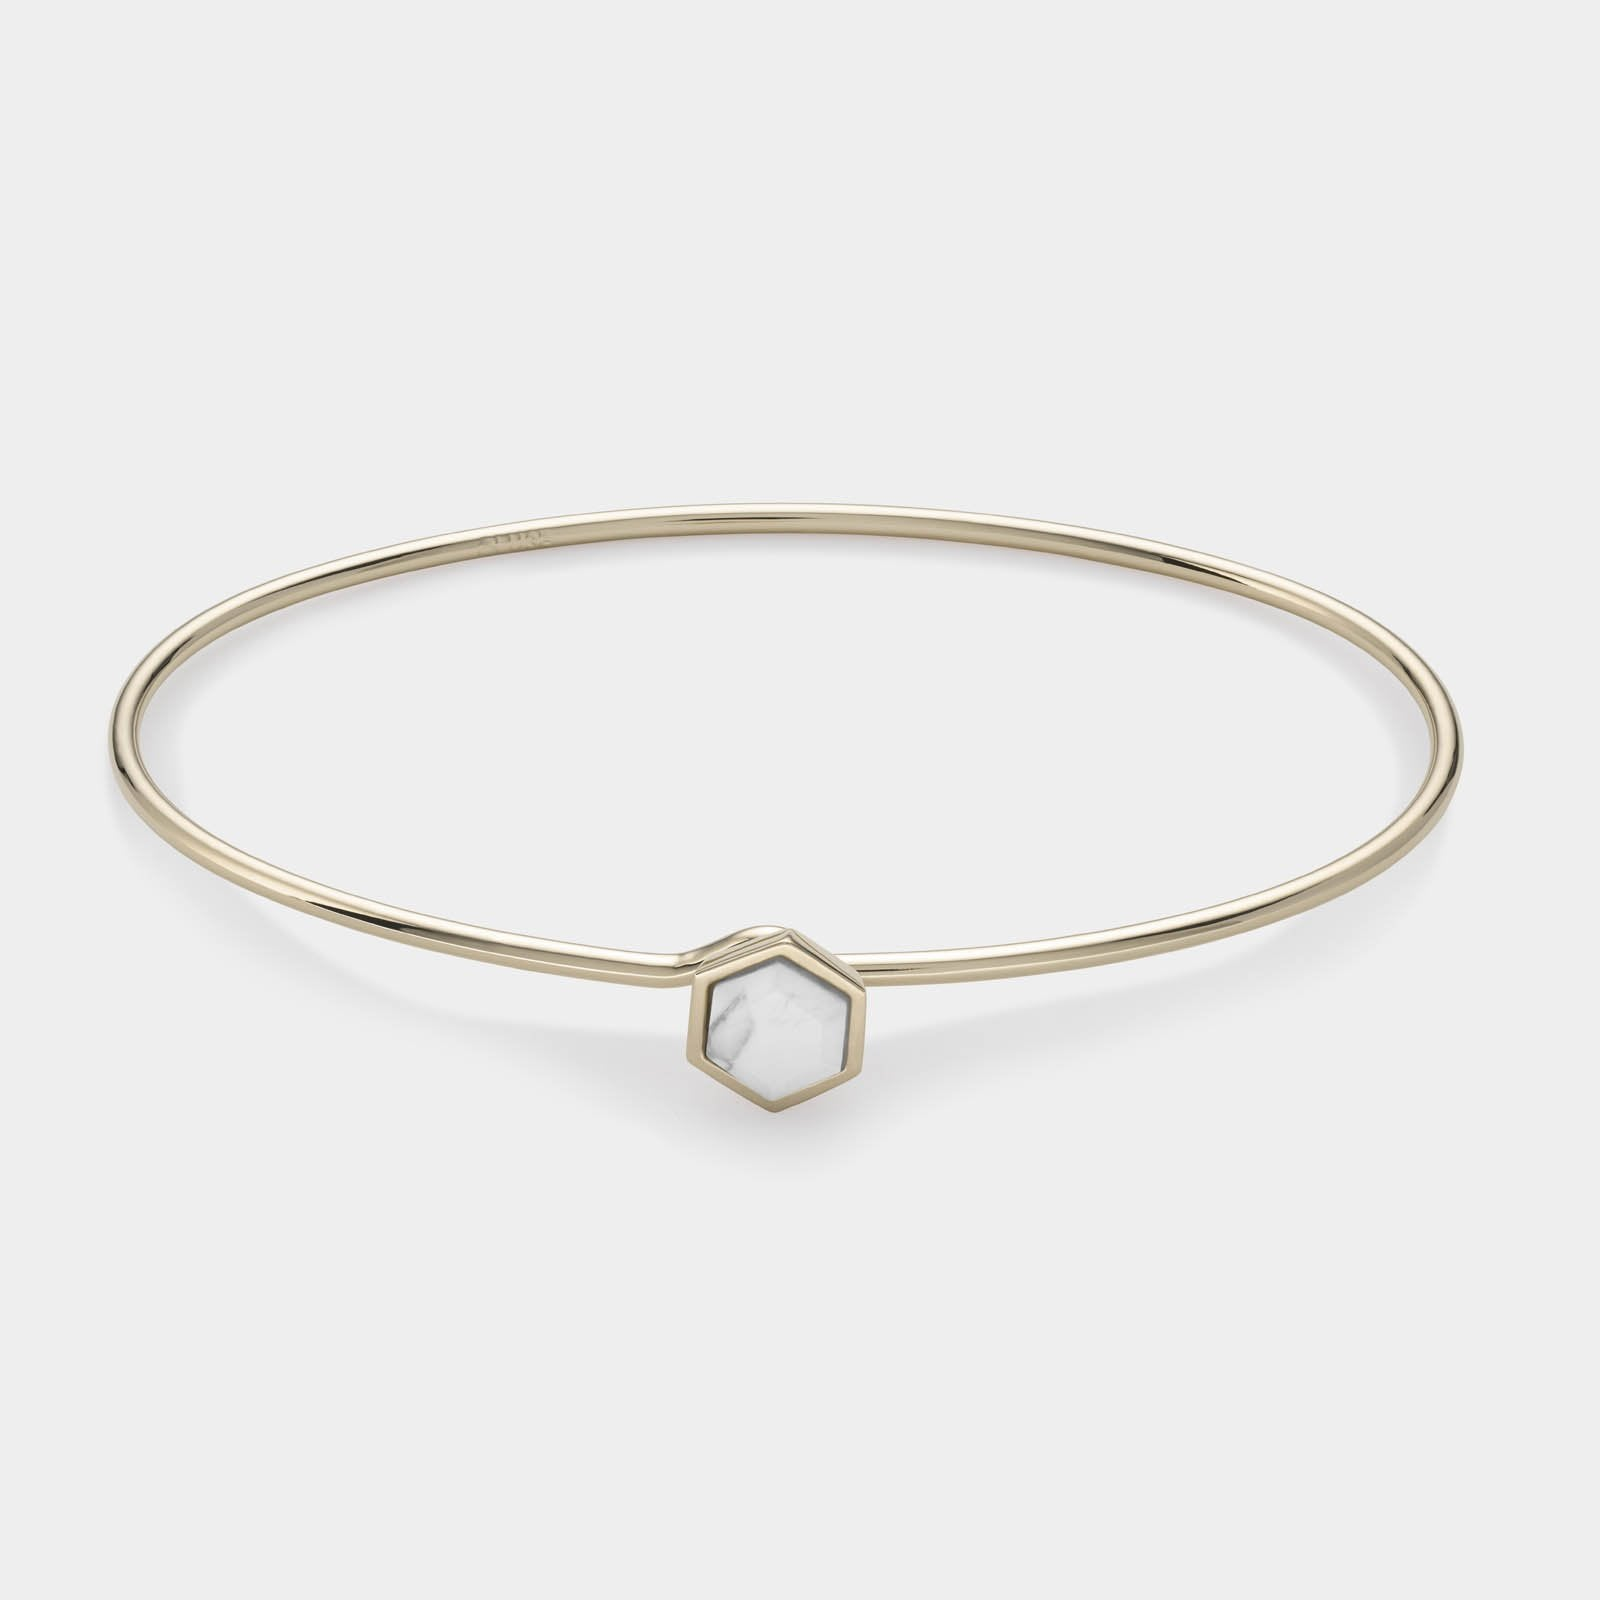 CLUSE Idylle Gold Marble Hexagon Bangle Bracelet CLJ11002 - armbandje